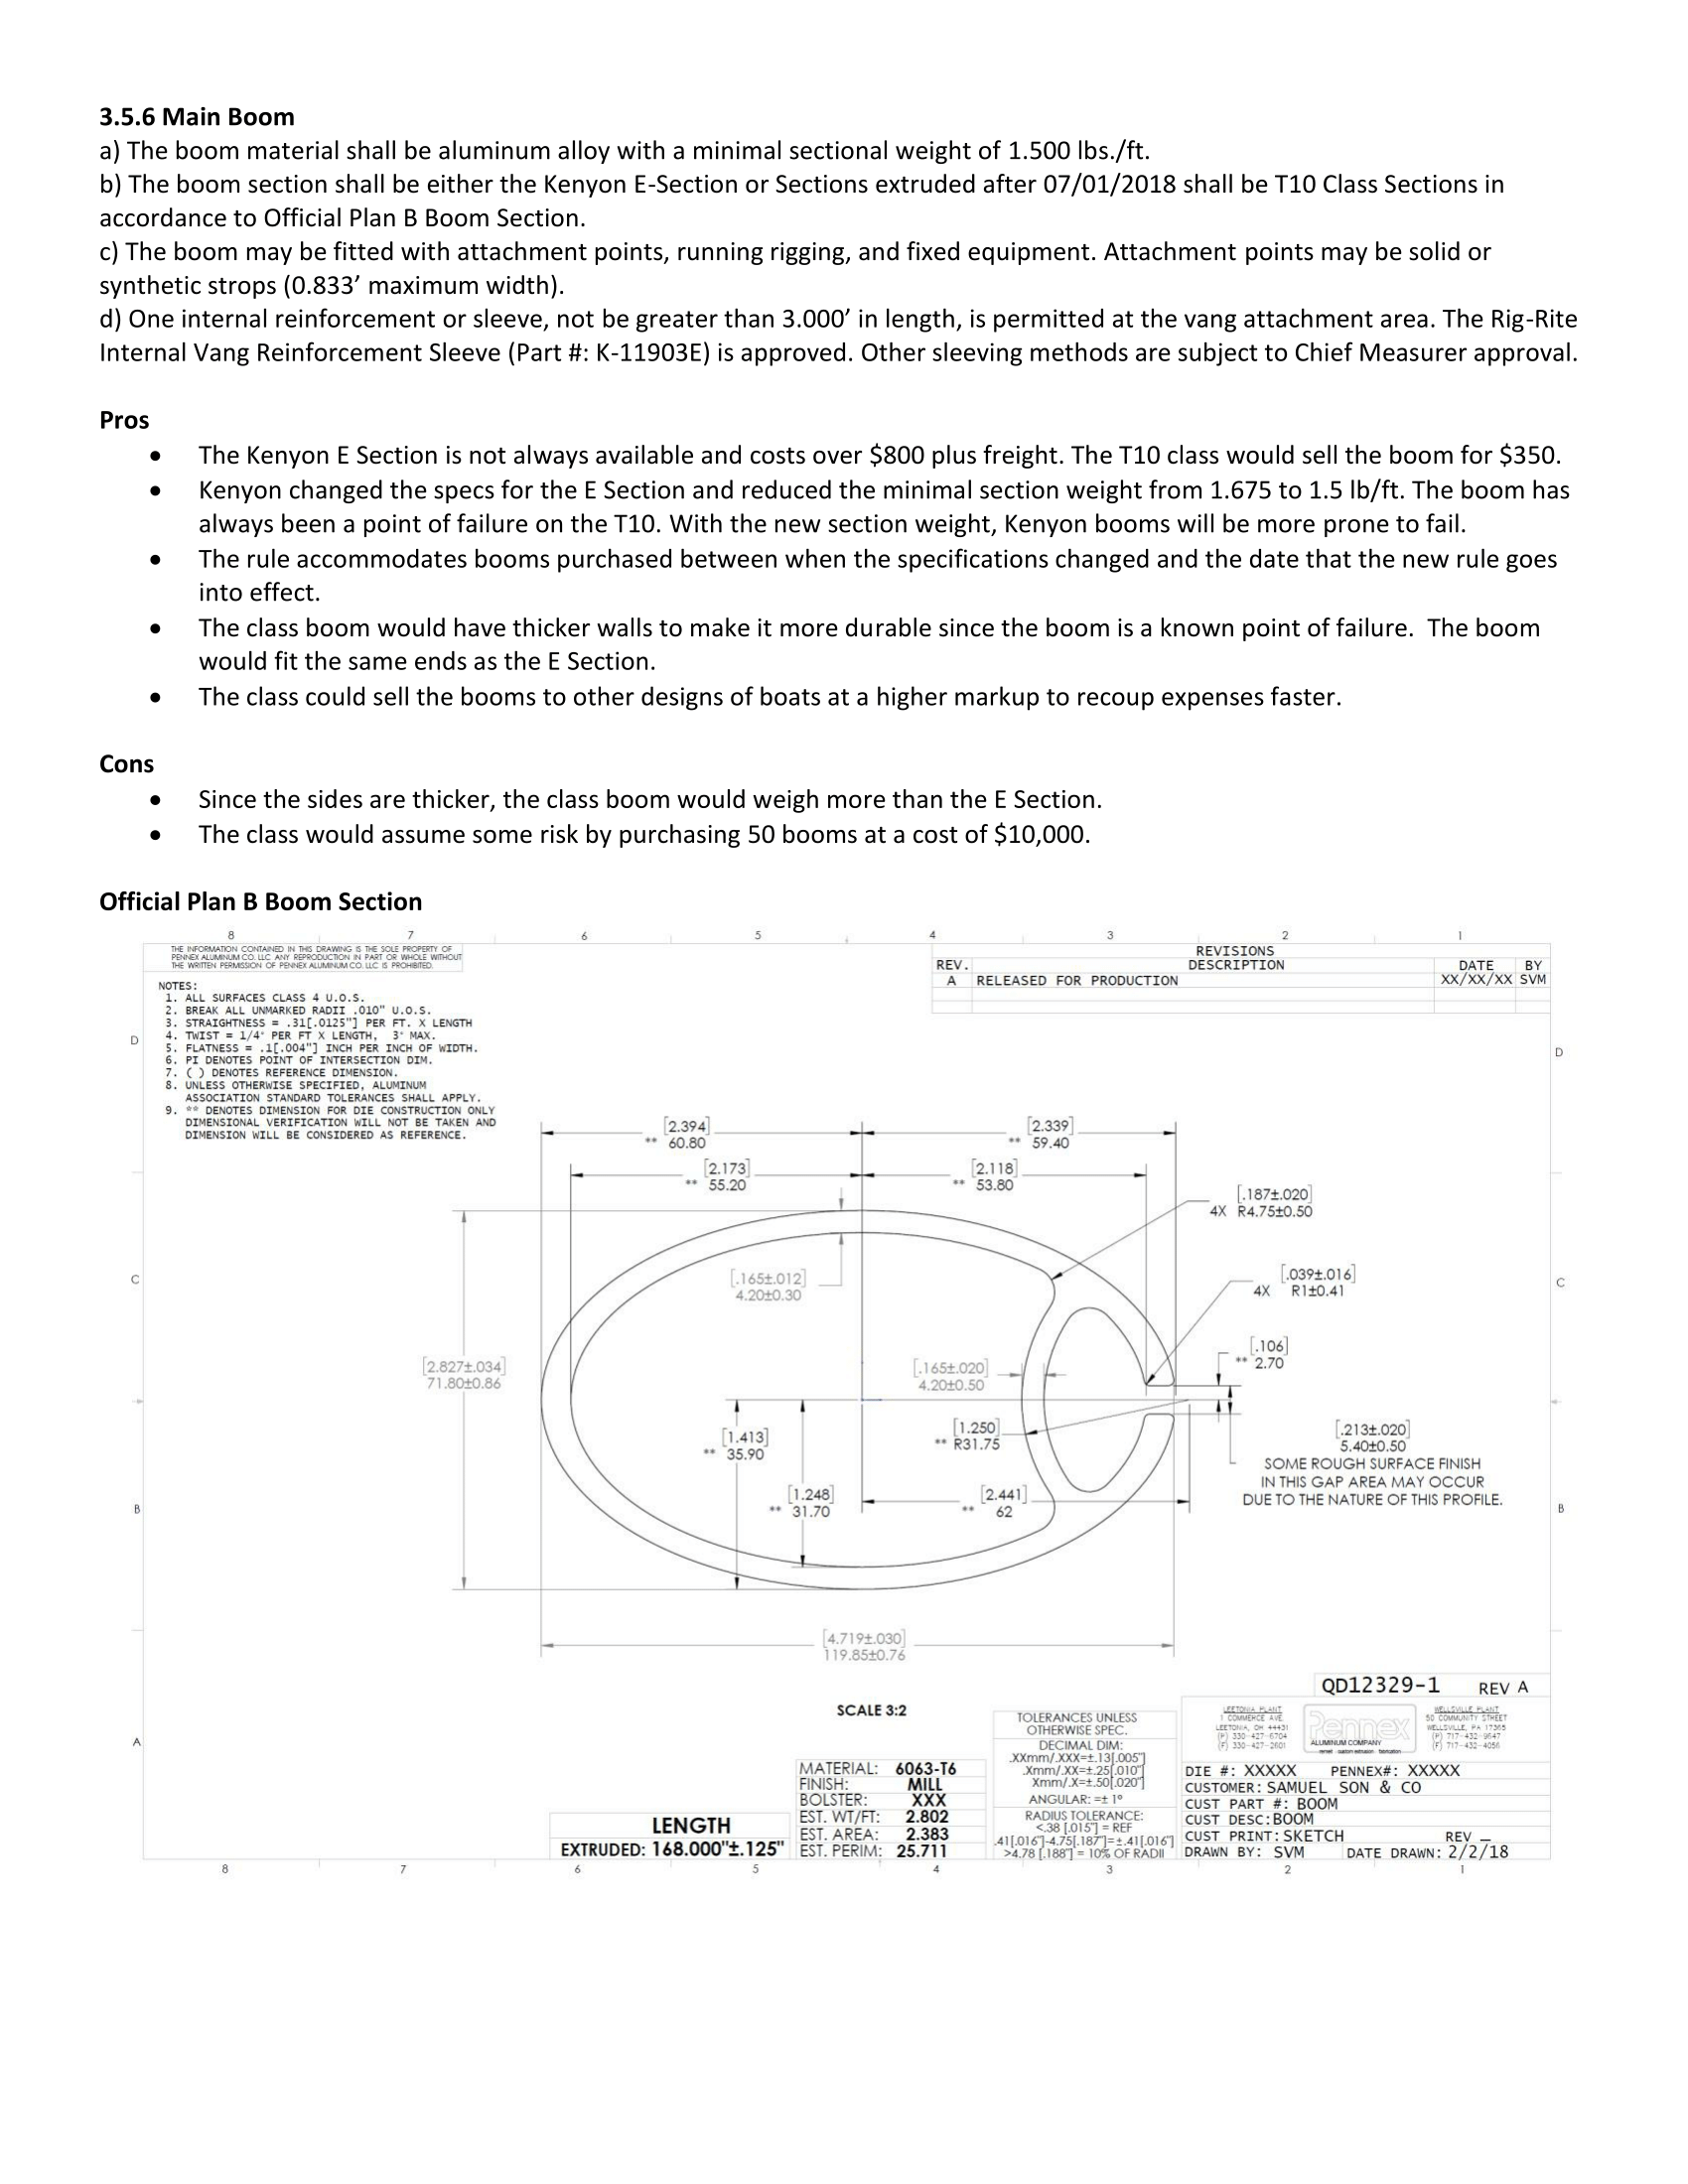 2018 T10 Boom Rule Proposal-1.png